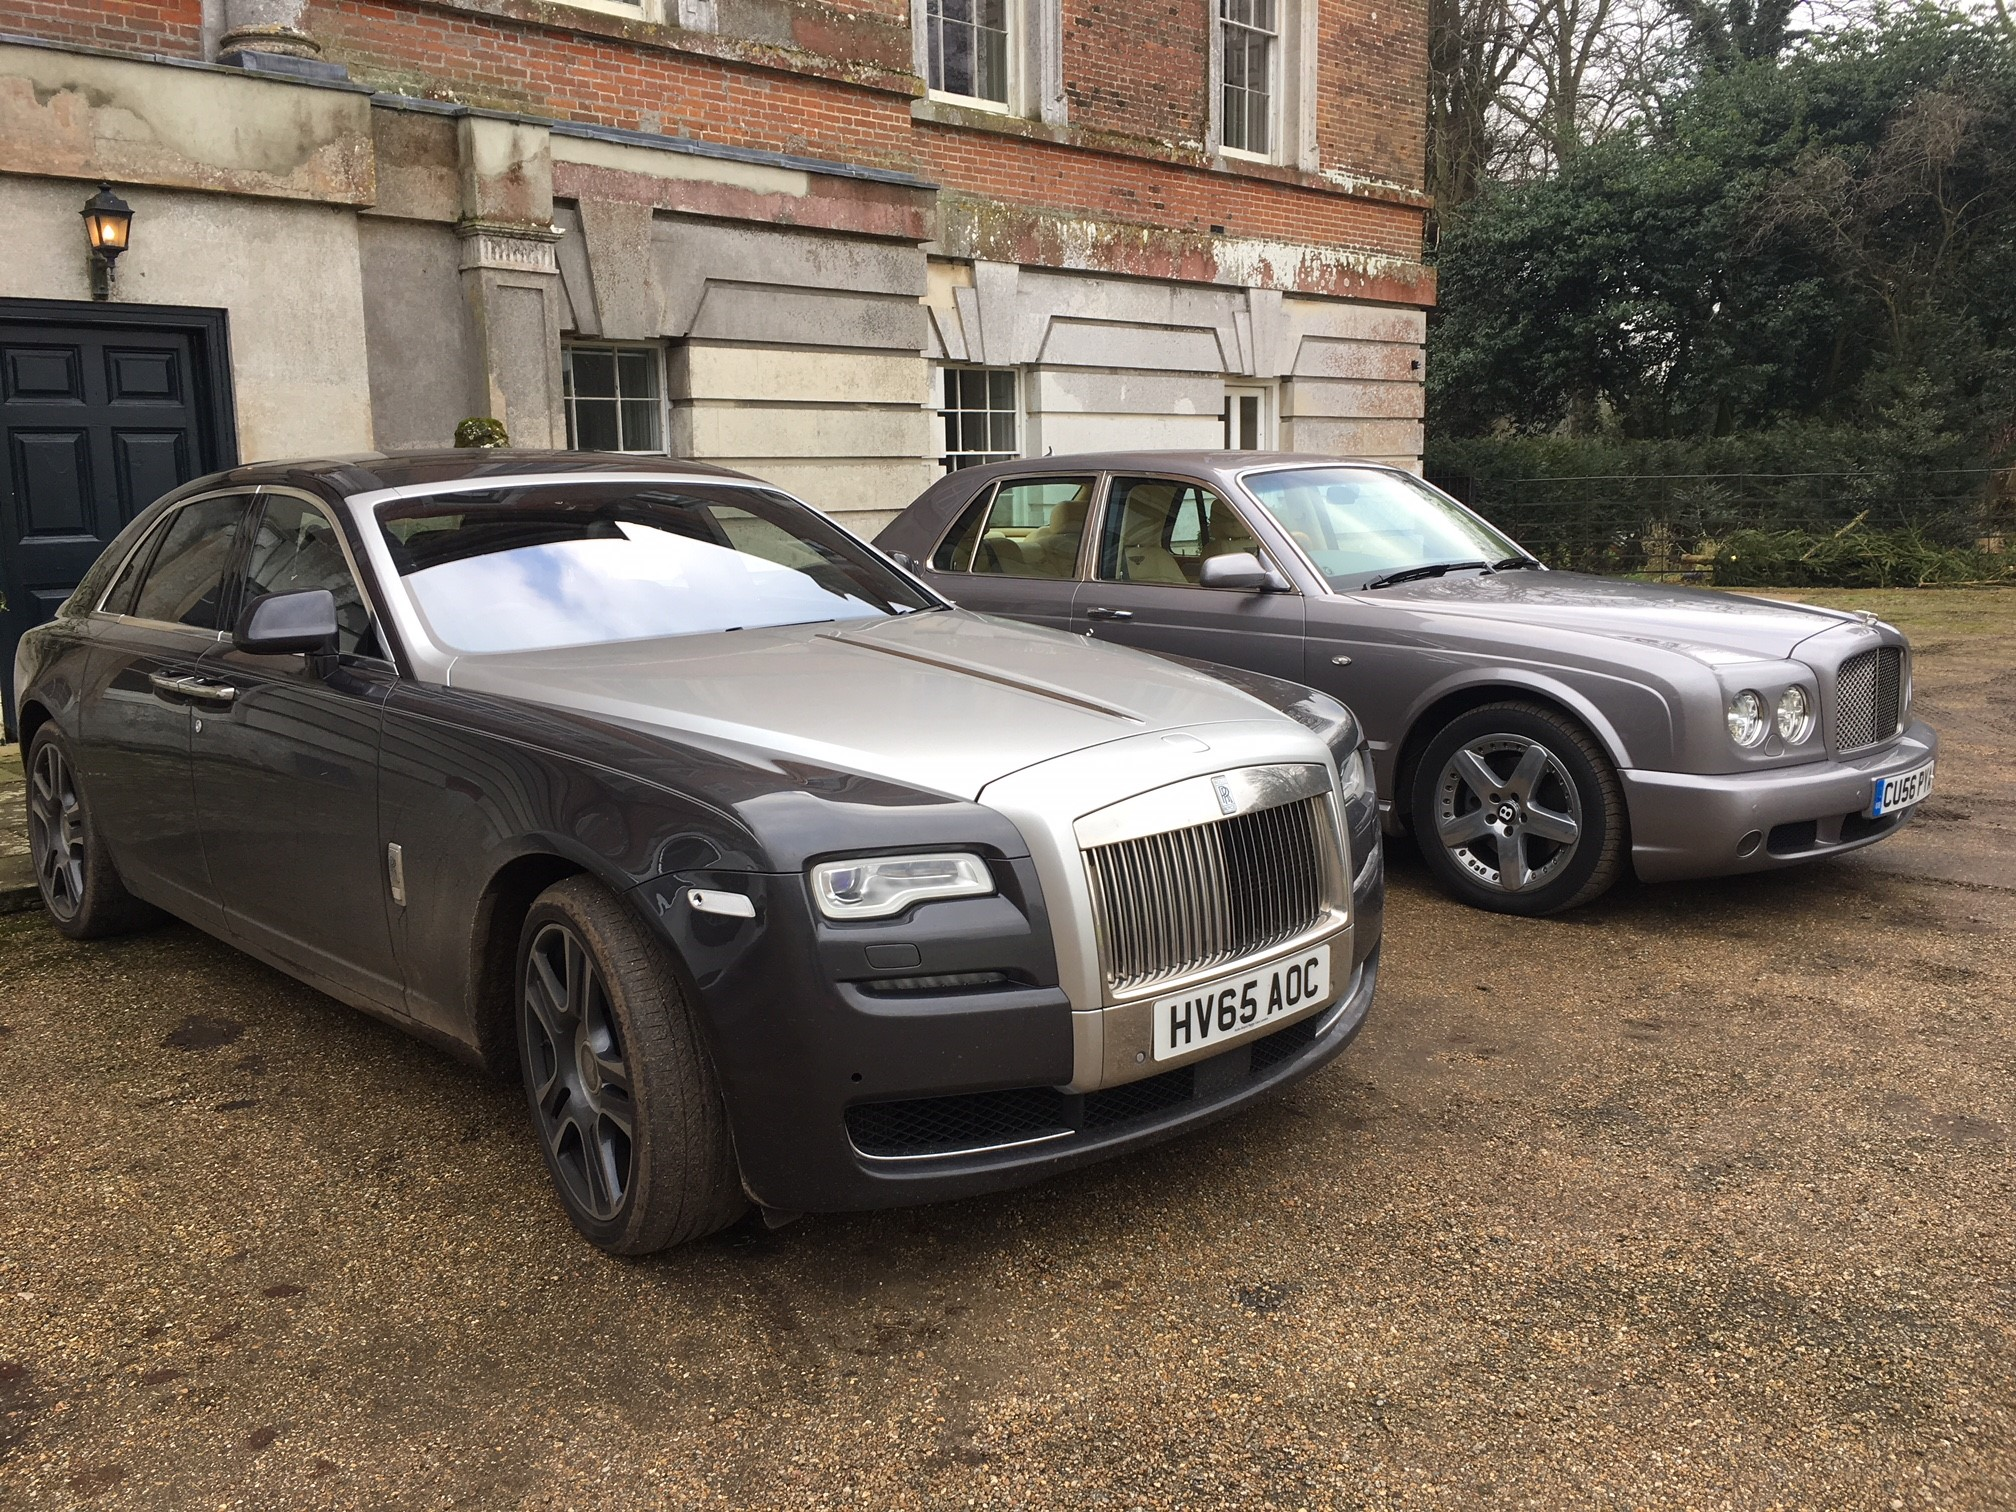 RR Ghost and the Arnage